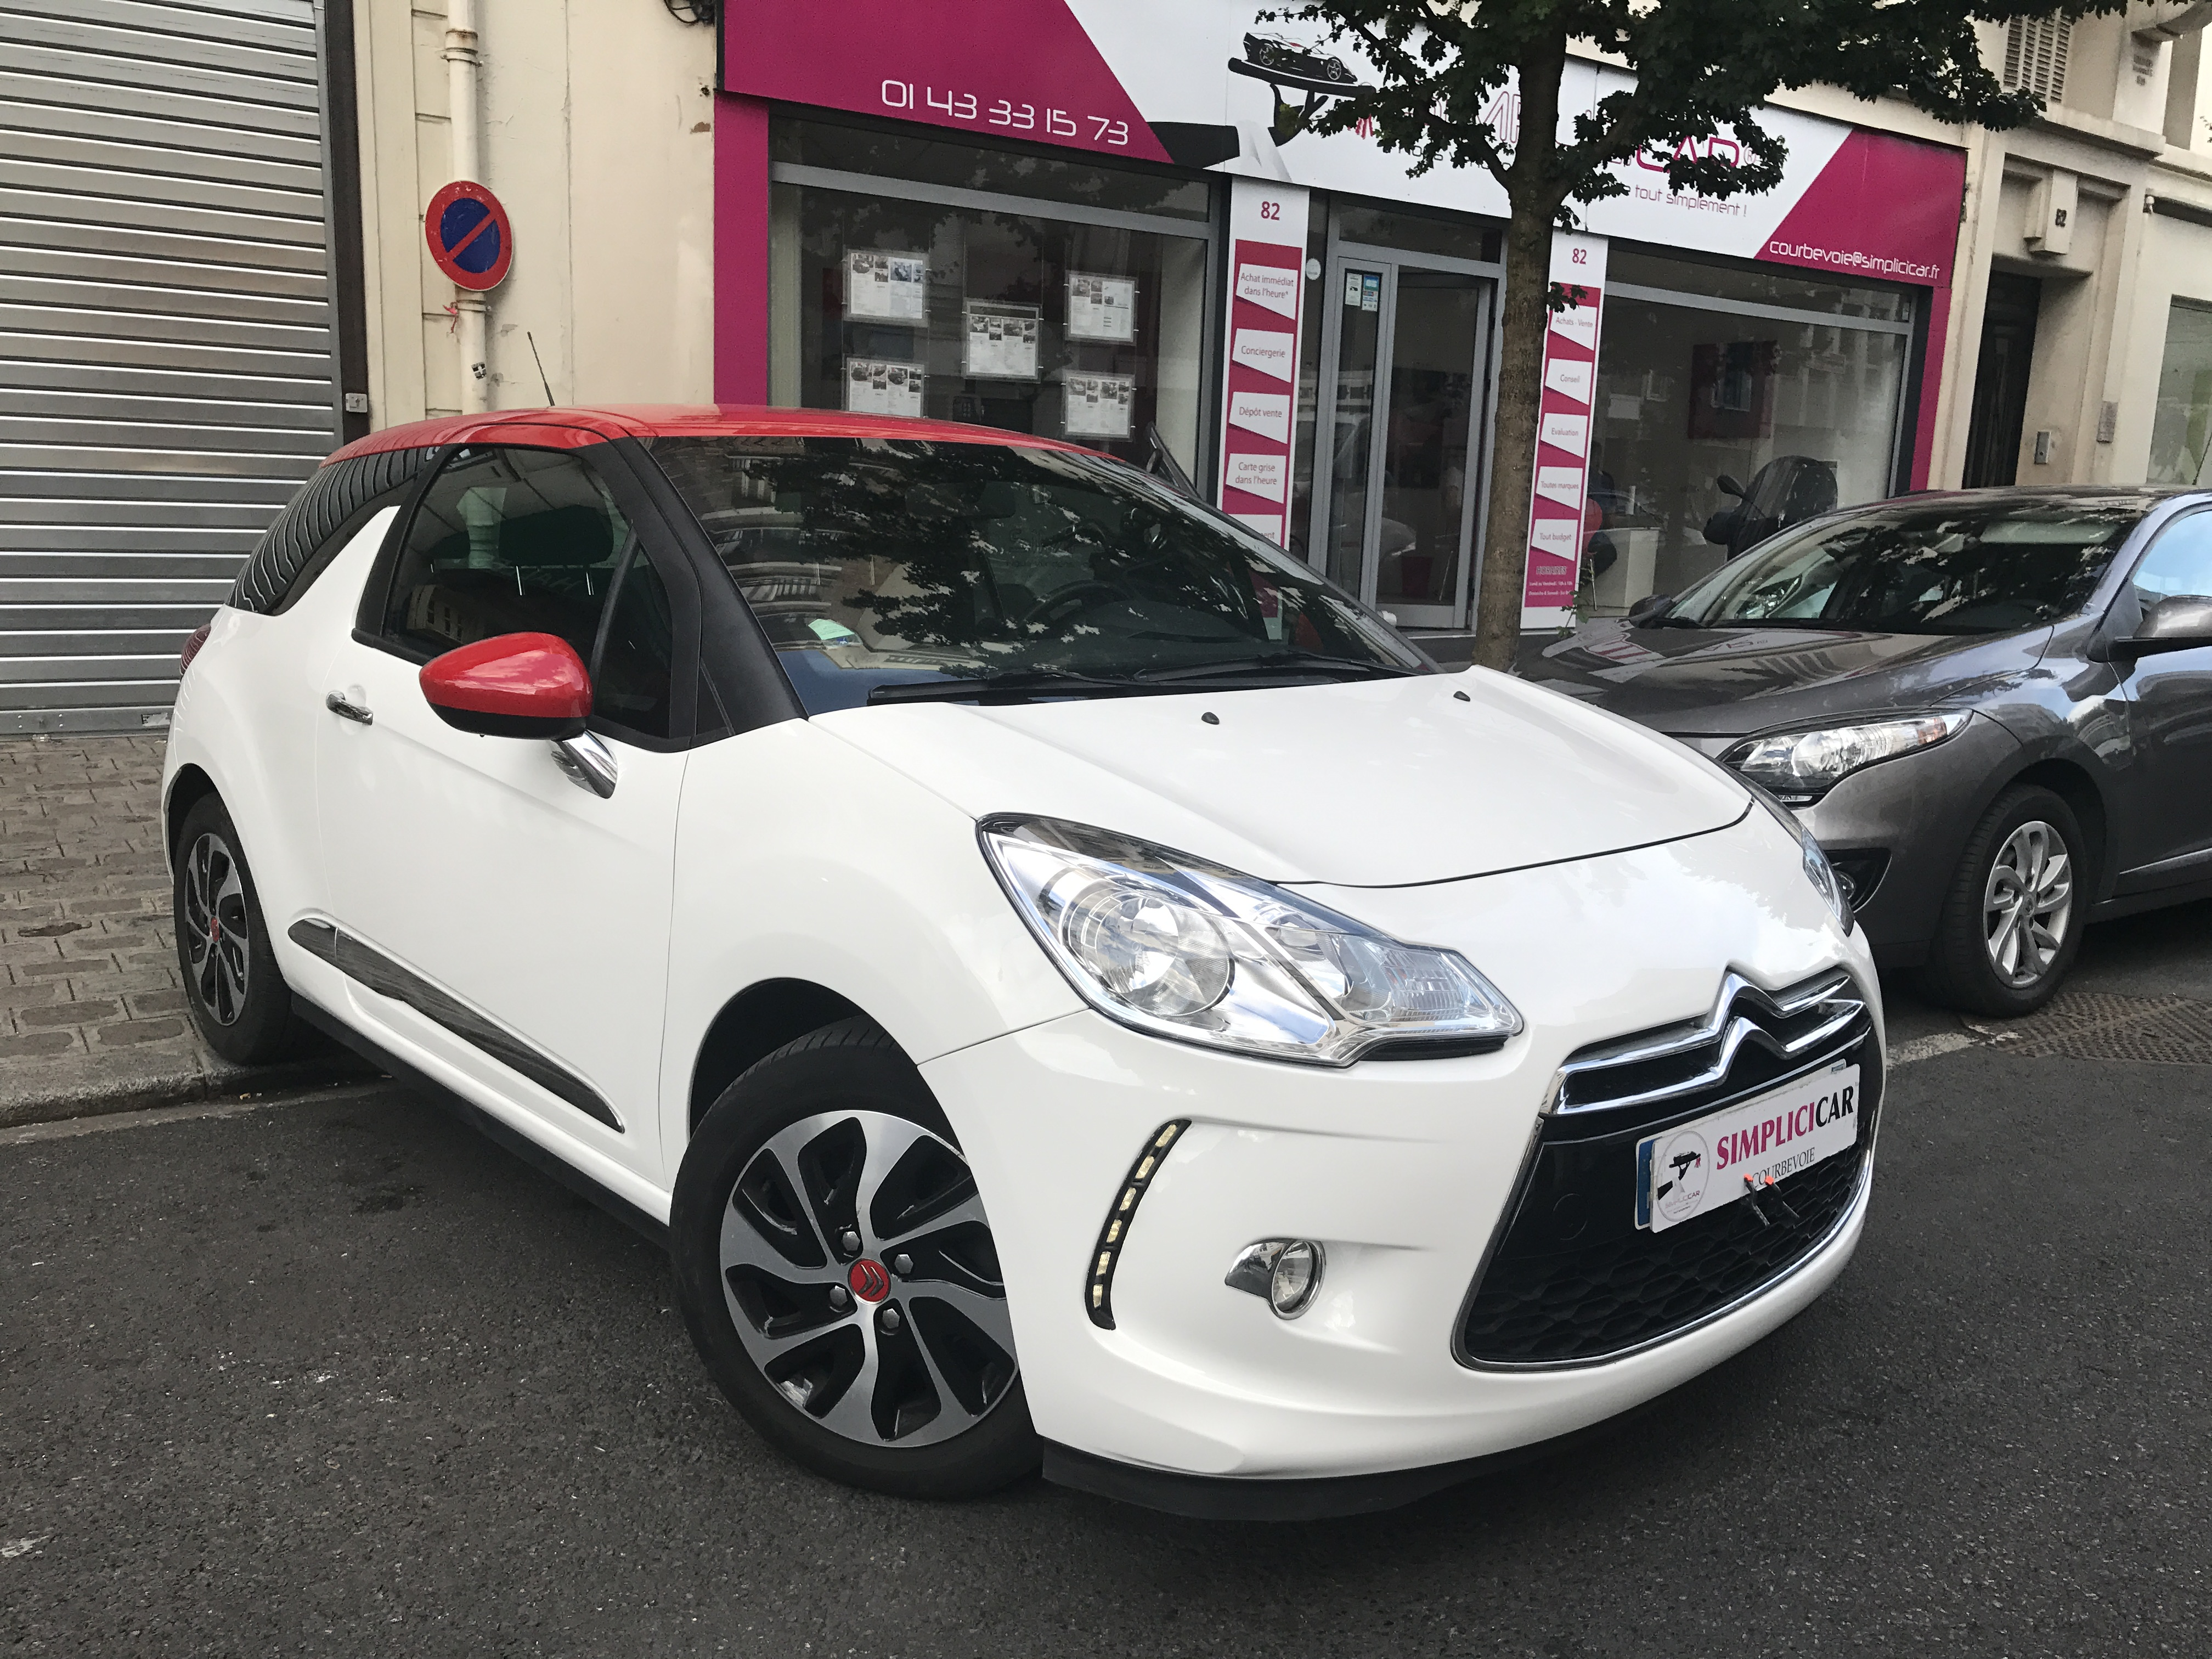 voiture citro n ds3 e hdi 90 so chic occasion diesel 2014 35000 km 12490 courbevoie. Black Bedroom Furniture Sets. Home Design Ideas